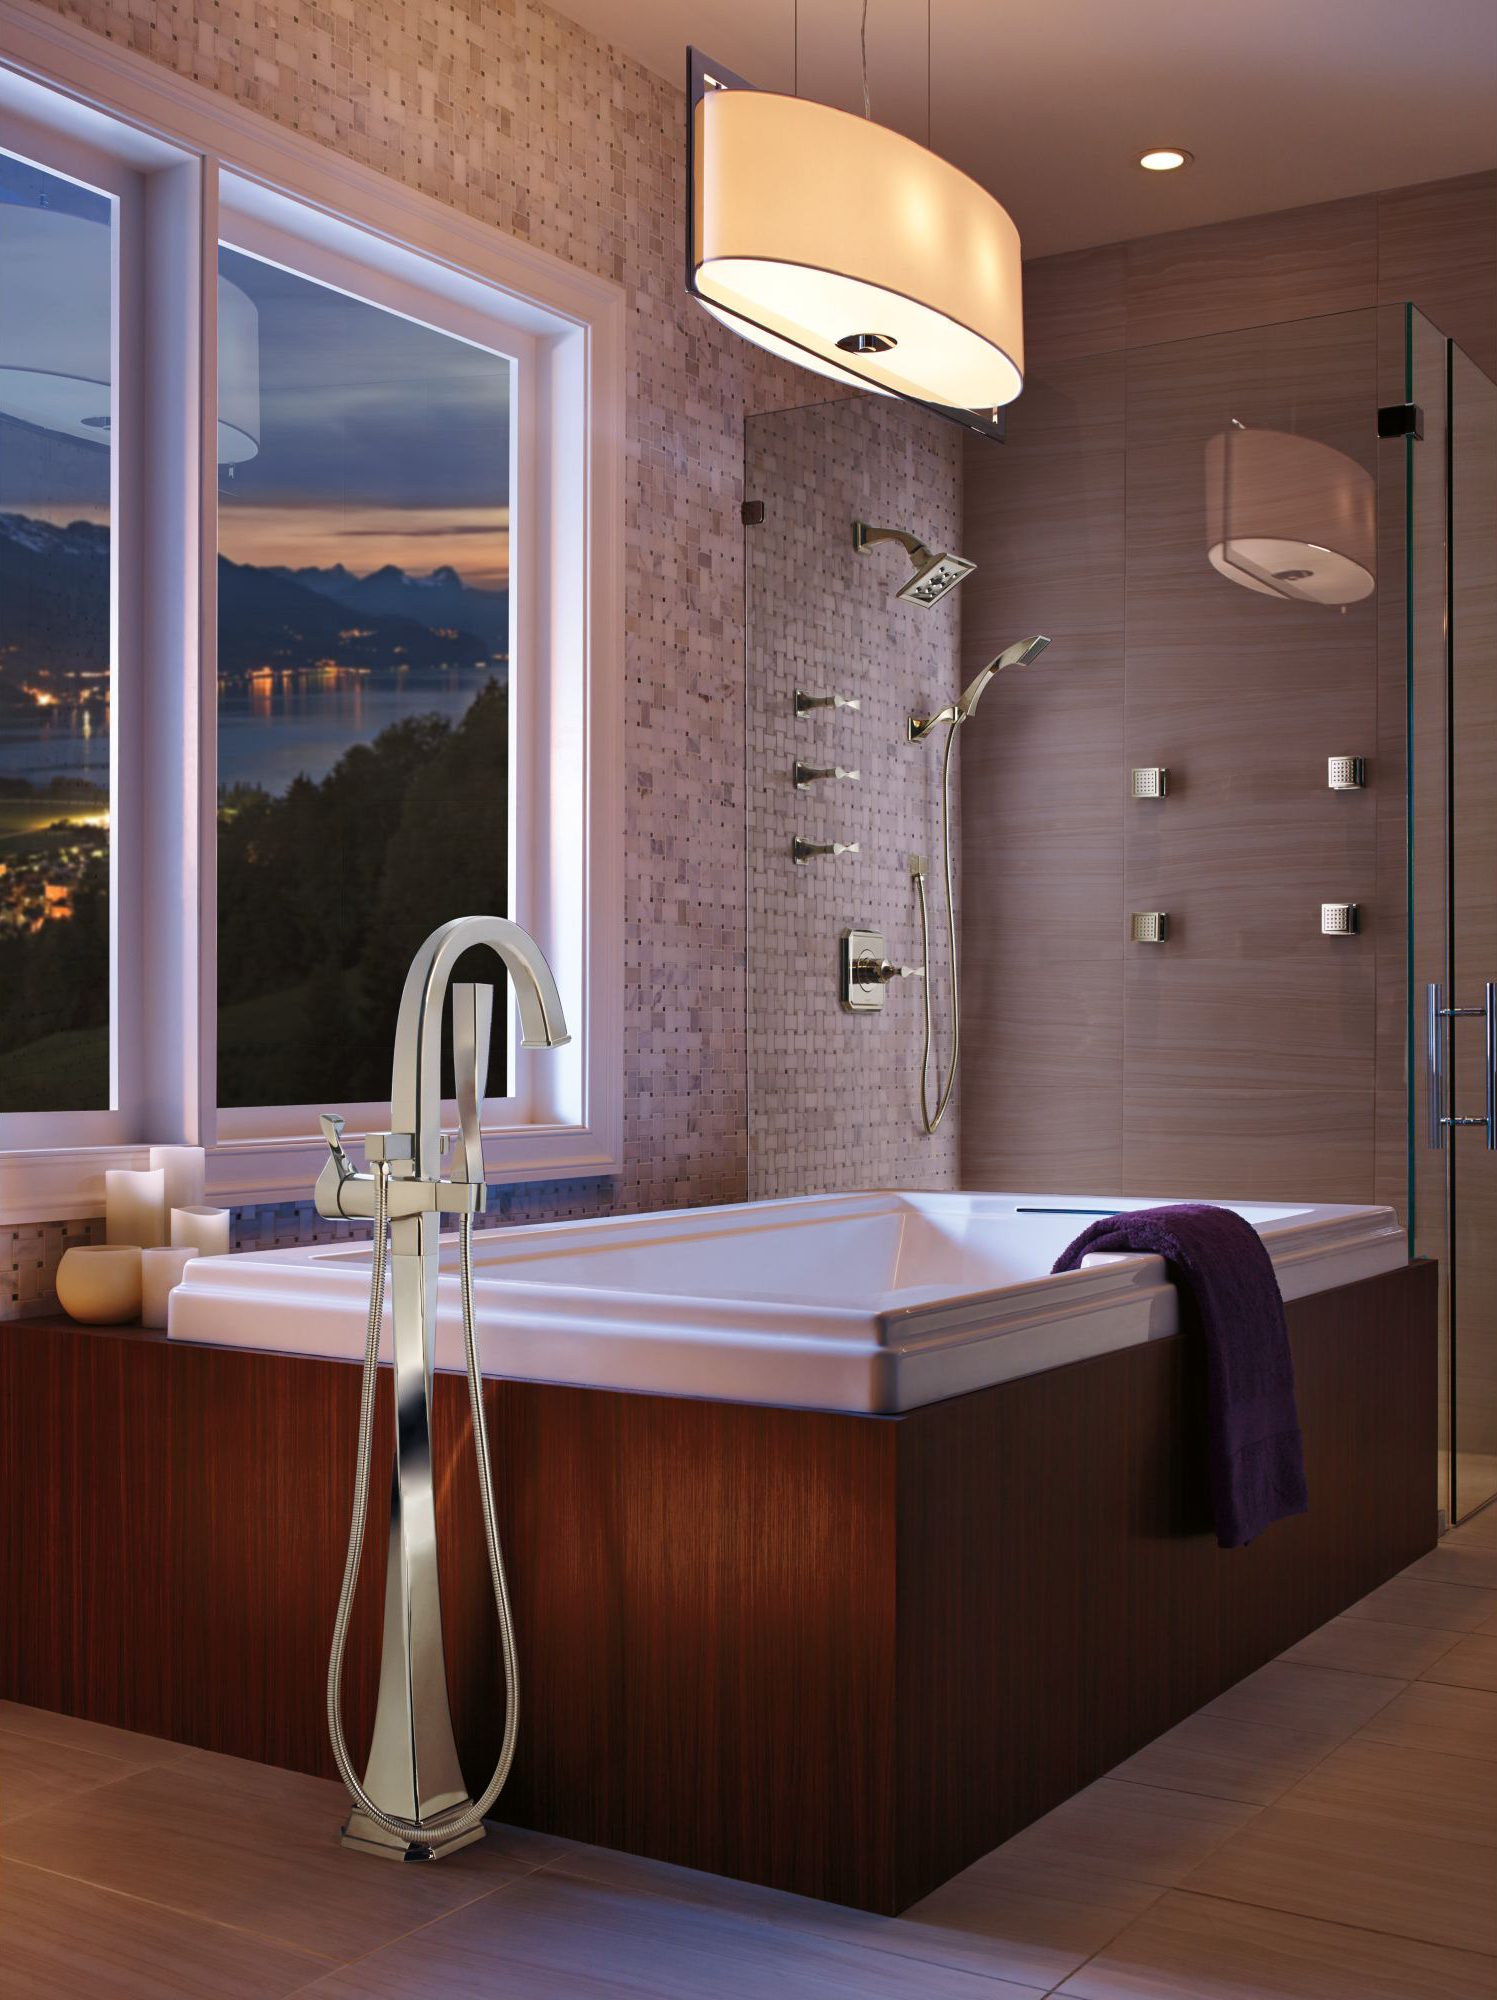 Brizo Virage Tub Filler